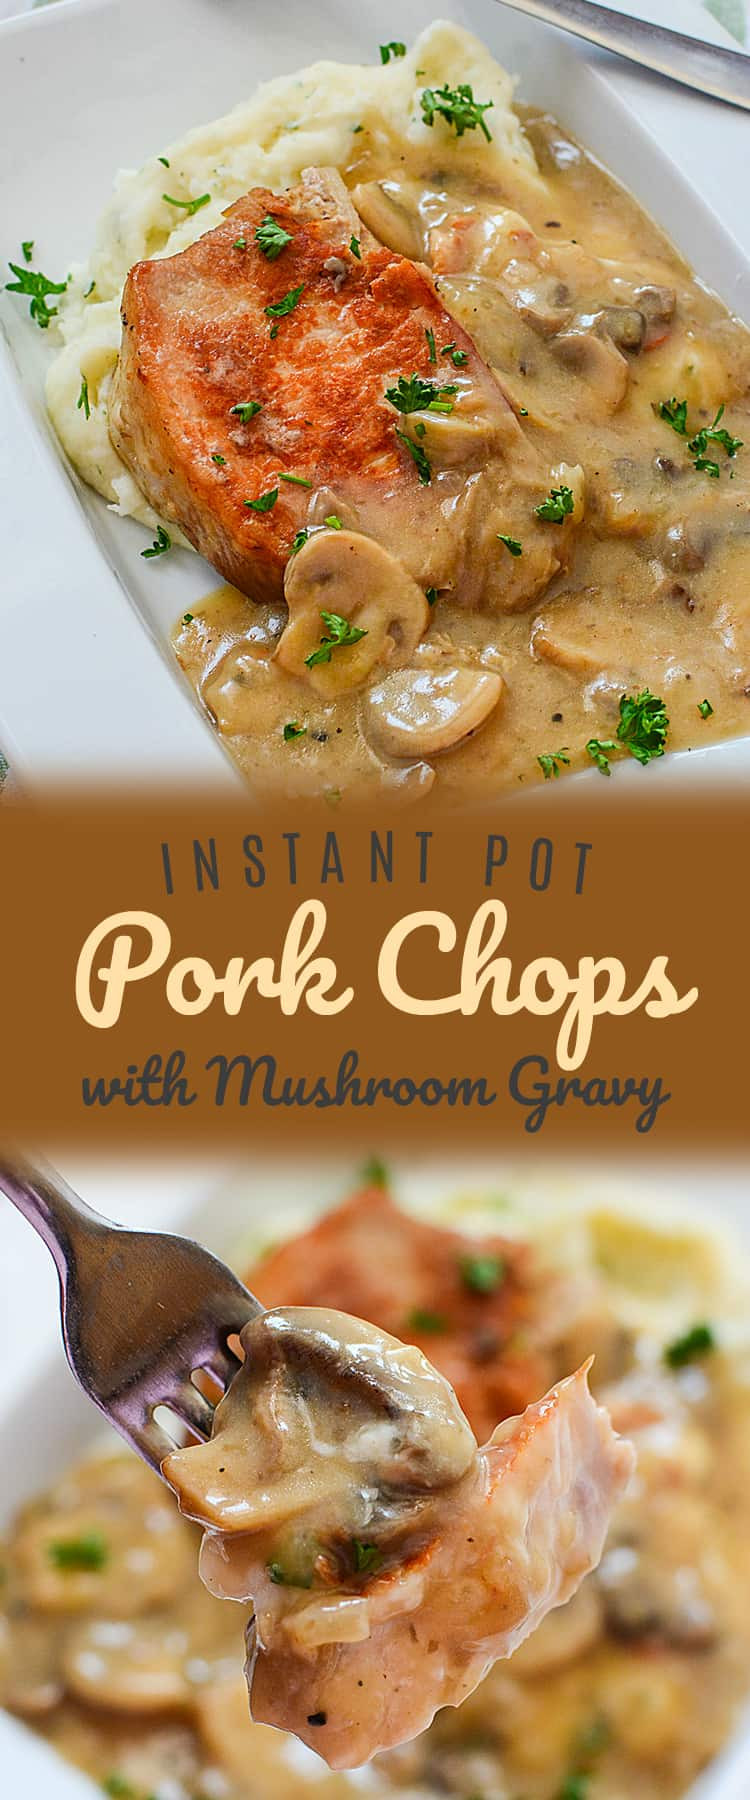 Instant Pot Frozen Pork Chops  Instant Pot Pork Chops with Mushroom Gravy